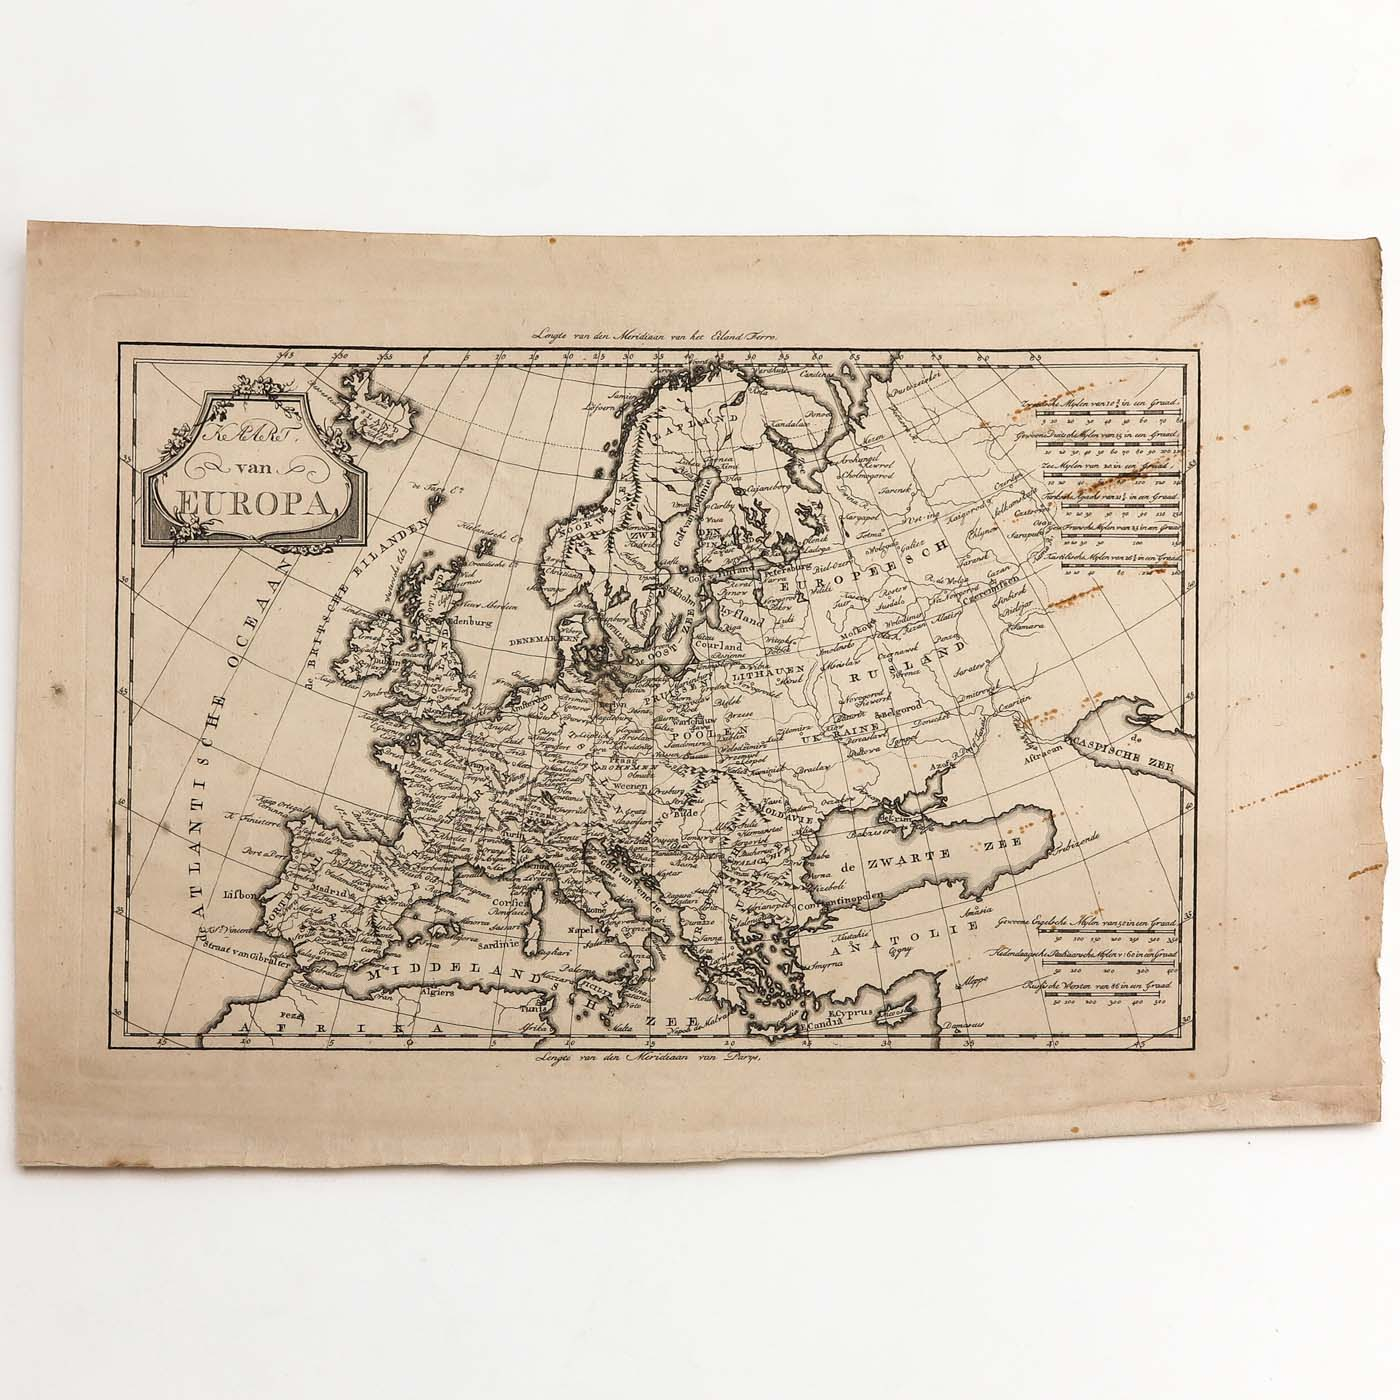 A Collection of Old Prints and Topographic Maps - Image 3 of 5